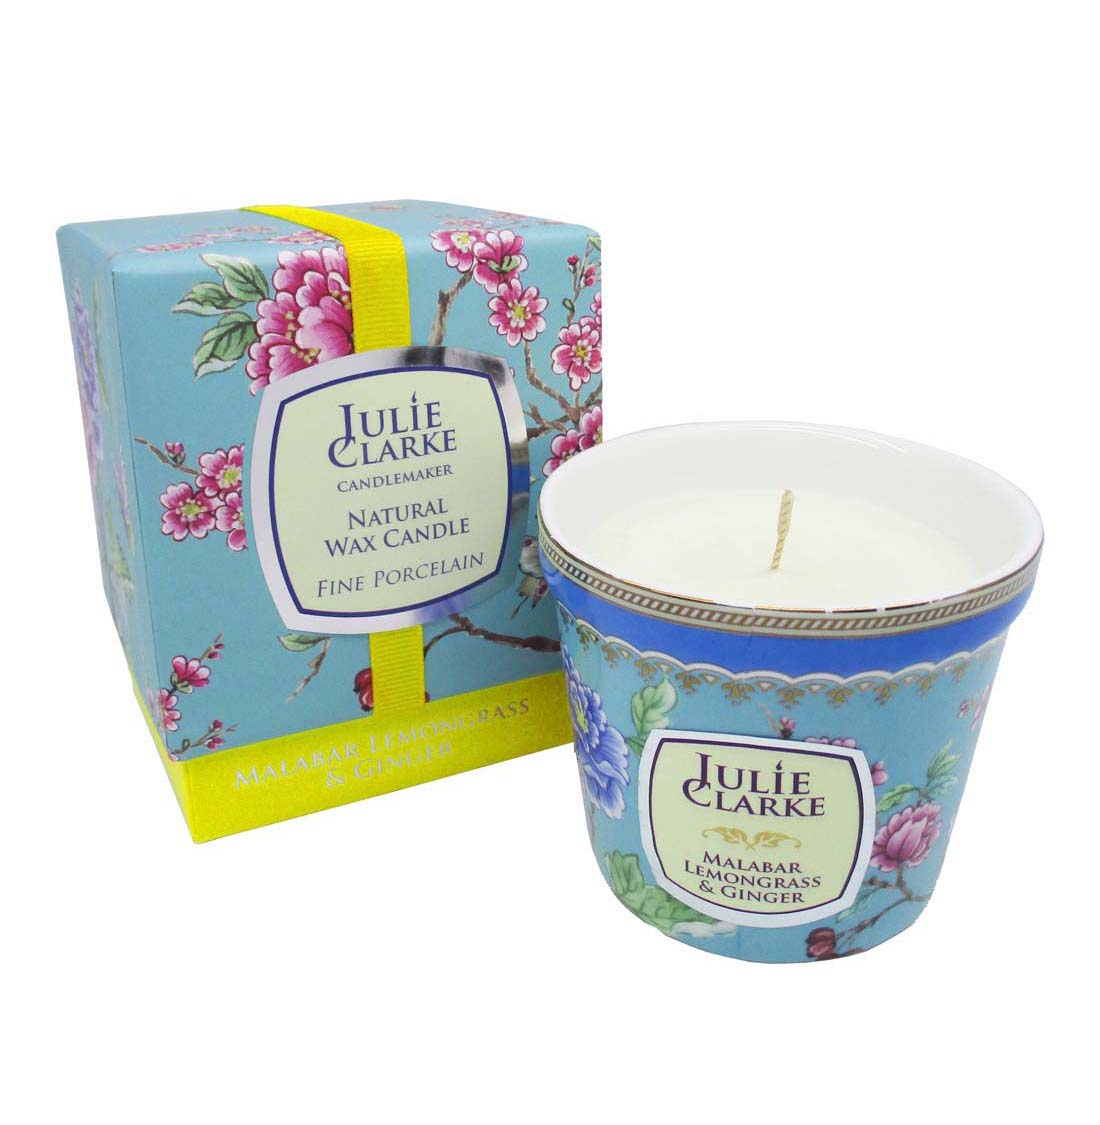 Malabar Lemongrass & Ginger Botanic Candle by Julie Clarke